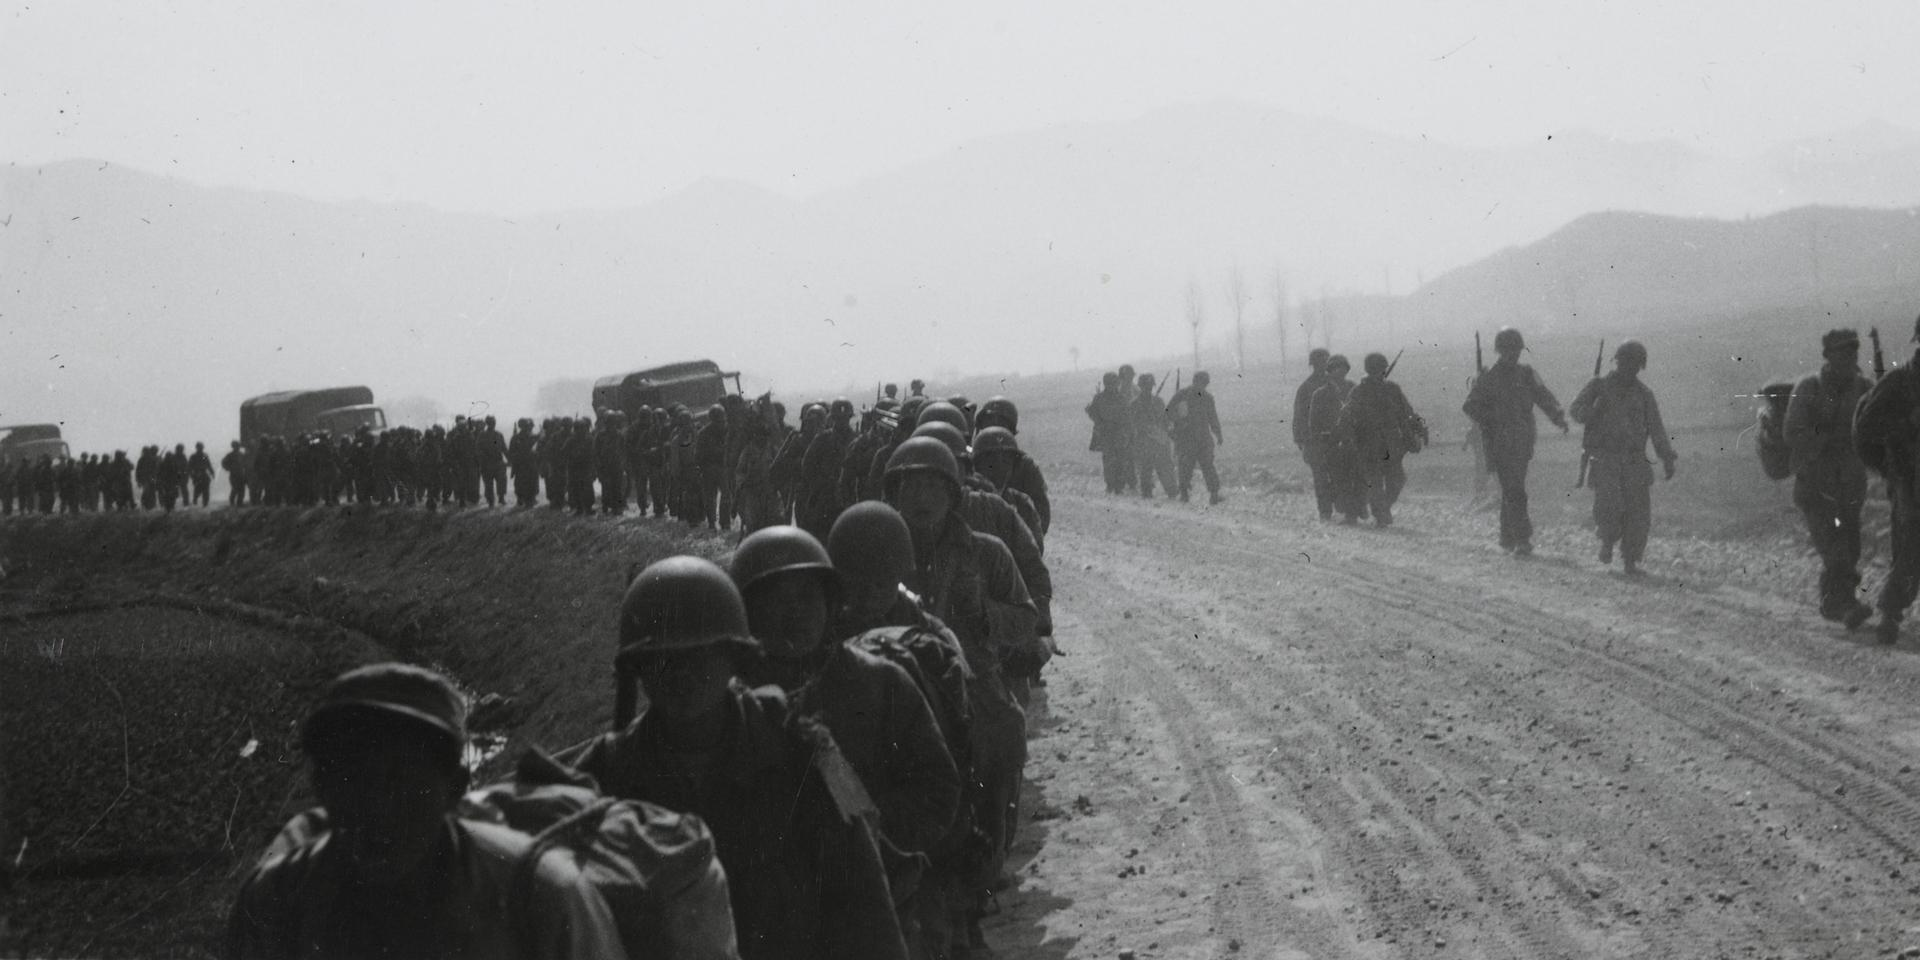 American soldiers march north, 1950